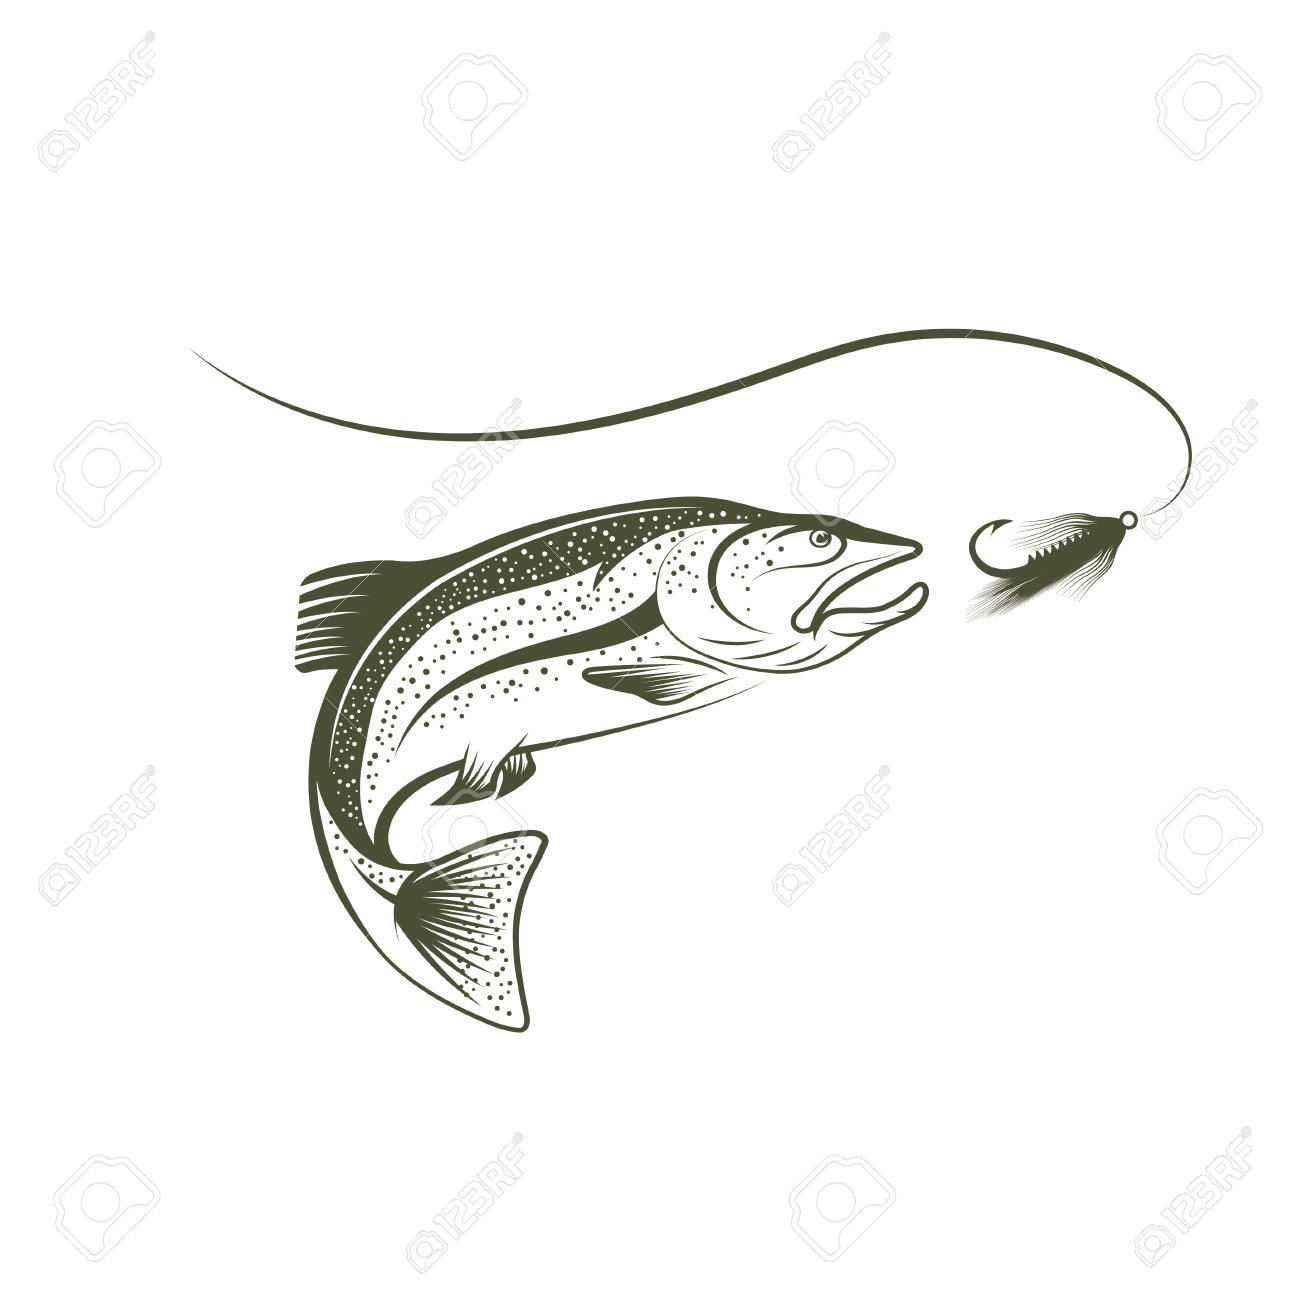 Sockeye Salmon clipart #20, Download drawings